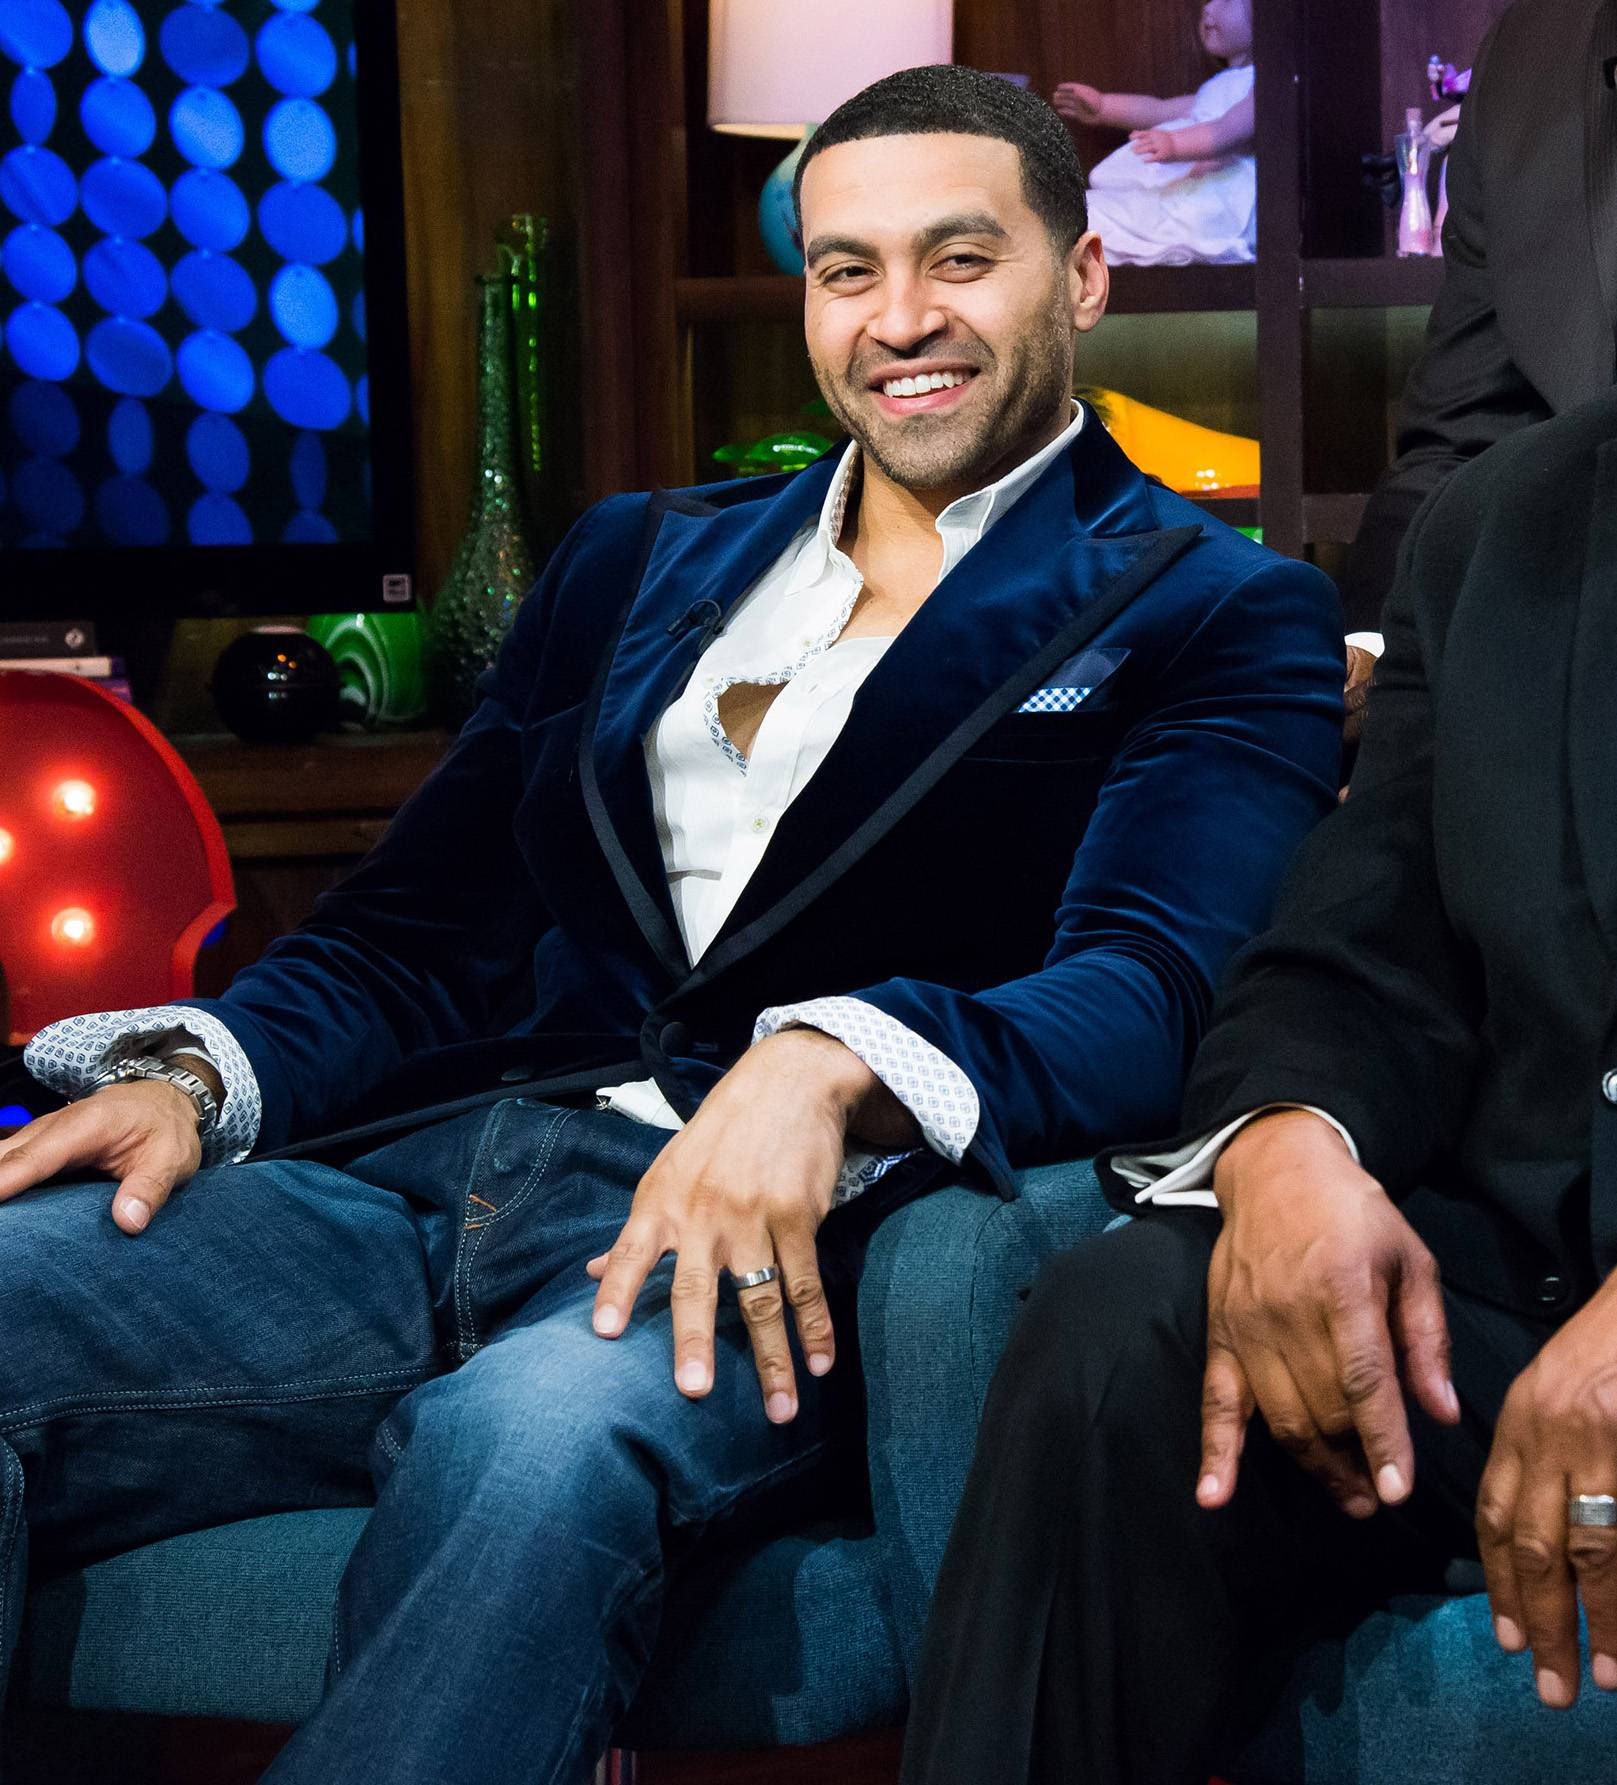 Apollo Nida Is Telling It All - Apollo Nida will be releasing a tell all book before he reports to prison on September 10. According to reports, the Real Housewives of Atlanta star has teamed up with multiple writers to pen an autobiography. The book will detail his upbringing and the events that led him to prison. Hopefully he'll add some Housewives tea in there, too. Will you be reading?(Photo: Charles Sykes/Bravo/NBCU Photo Bank)